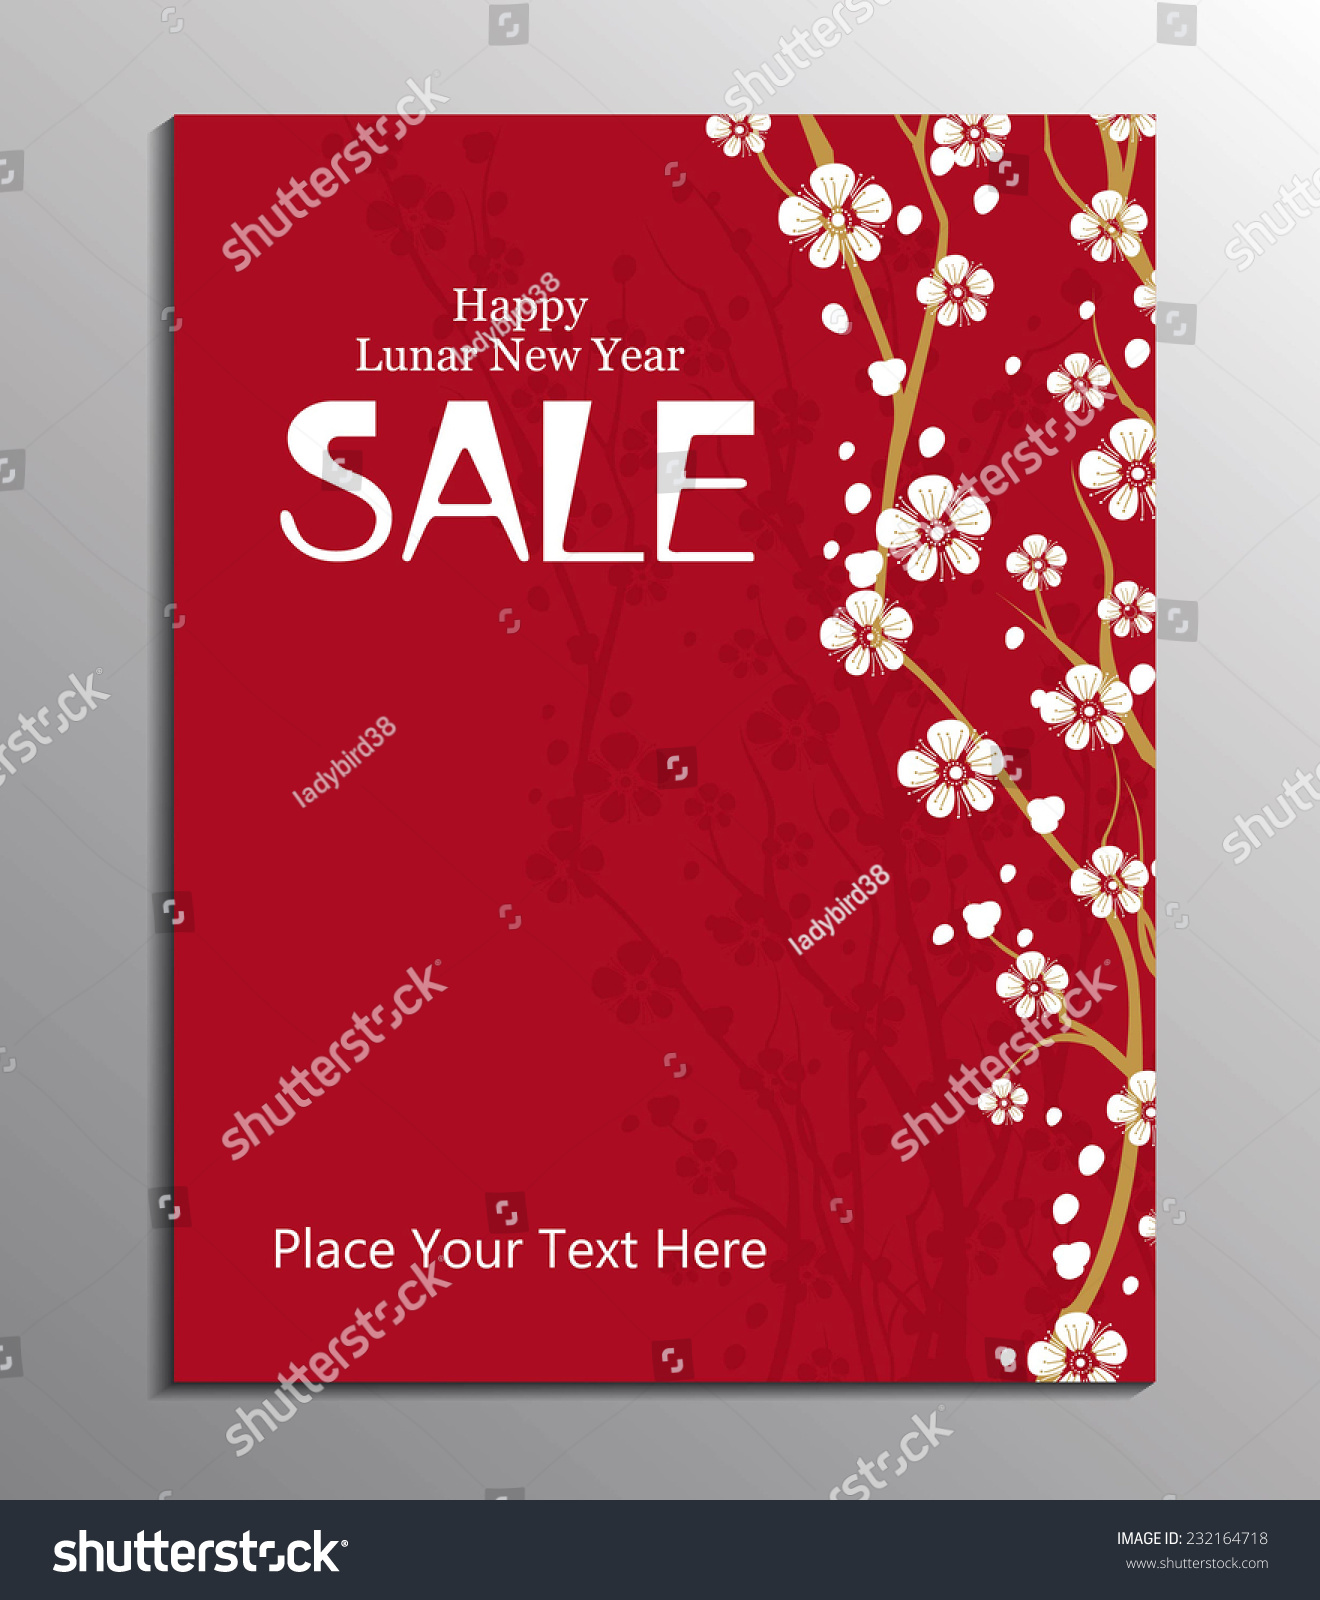 chinese new year design template stock vector  chinese new year design template